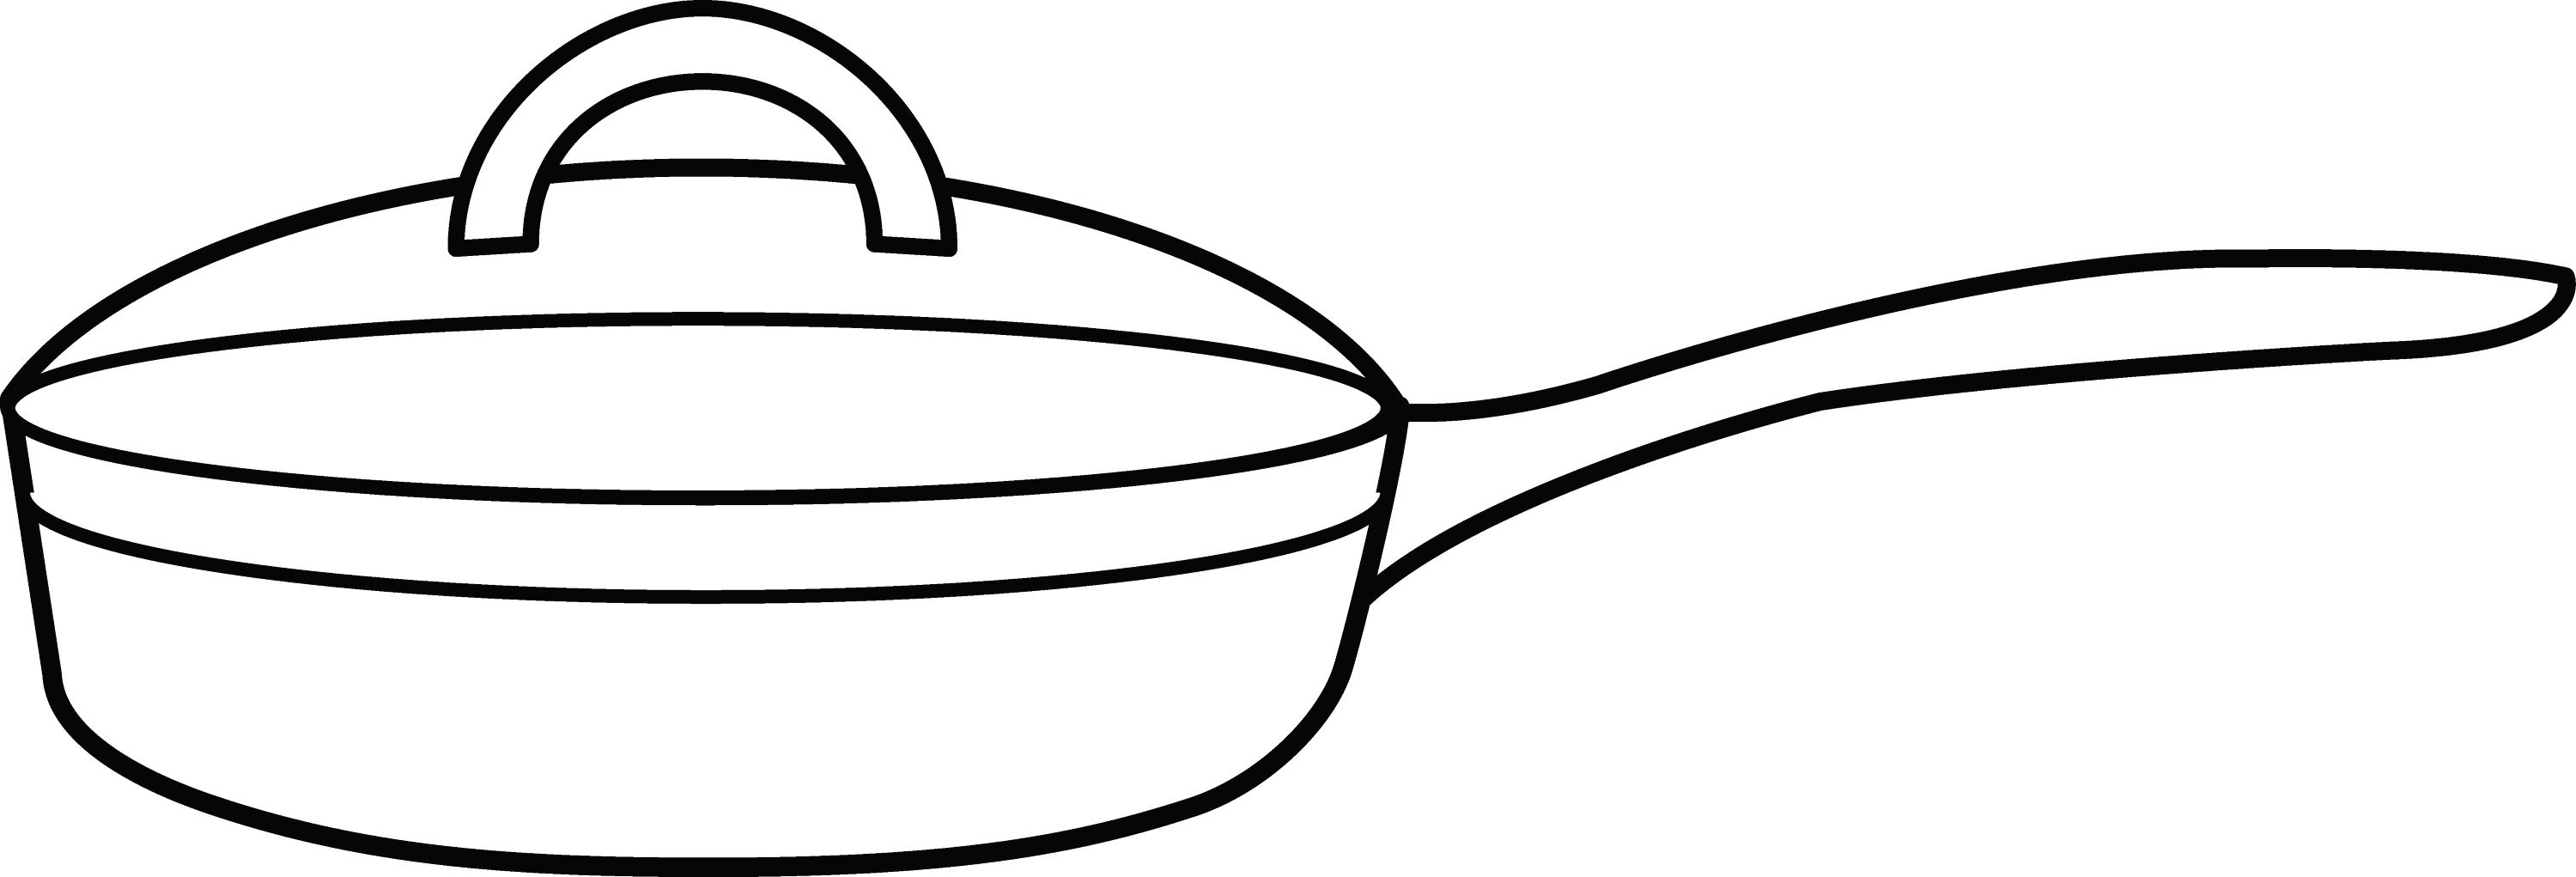 Free coloring pages kitchen utensils - Frying Pan Coloring Page